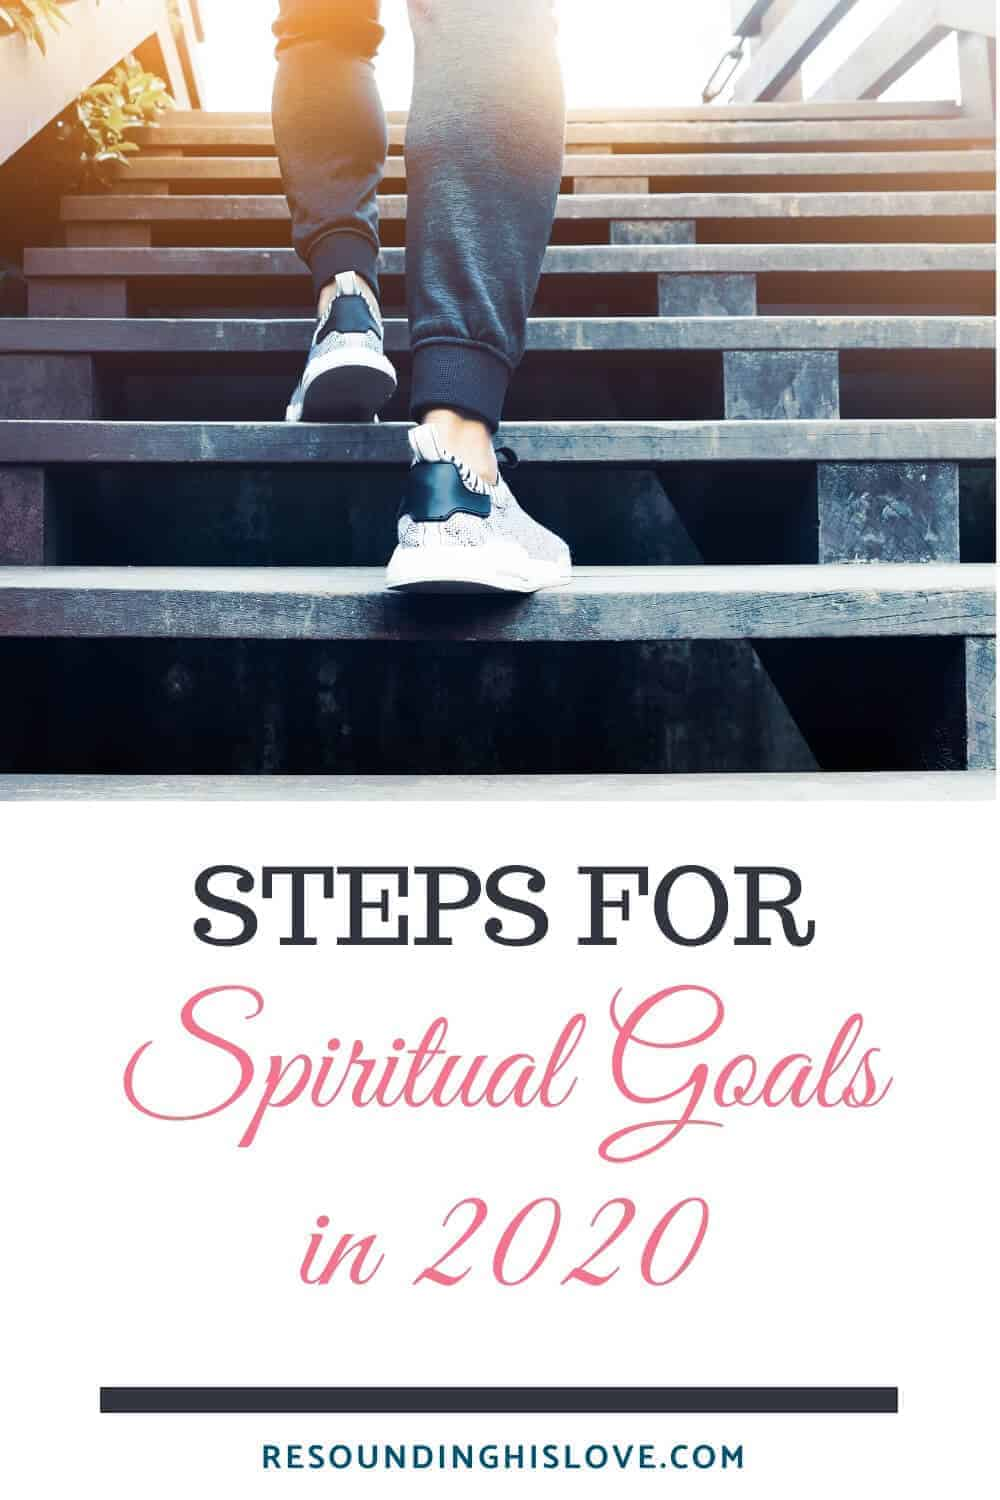 an image of a woman walking up a flight of steps with text reading 5 Steps for Setting Spiritual Goals That Work in 2020